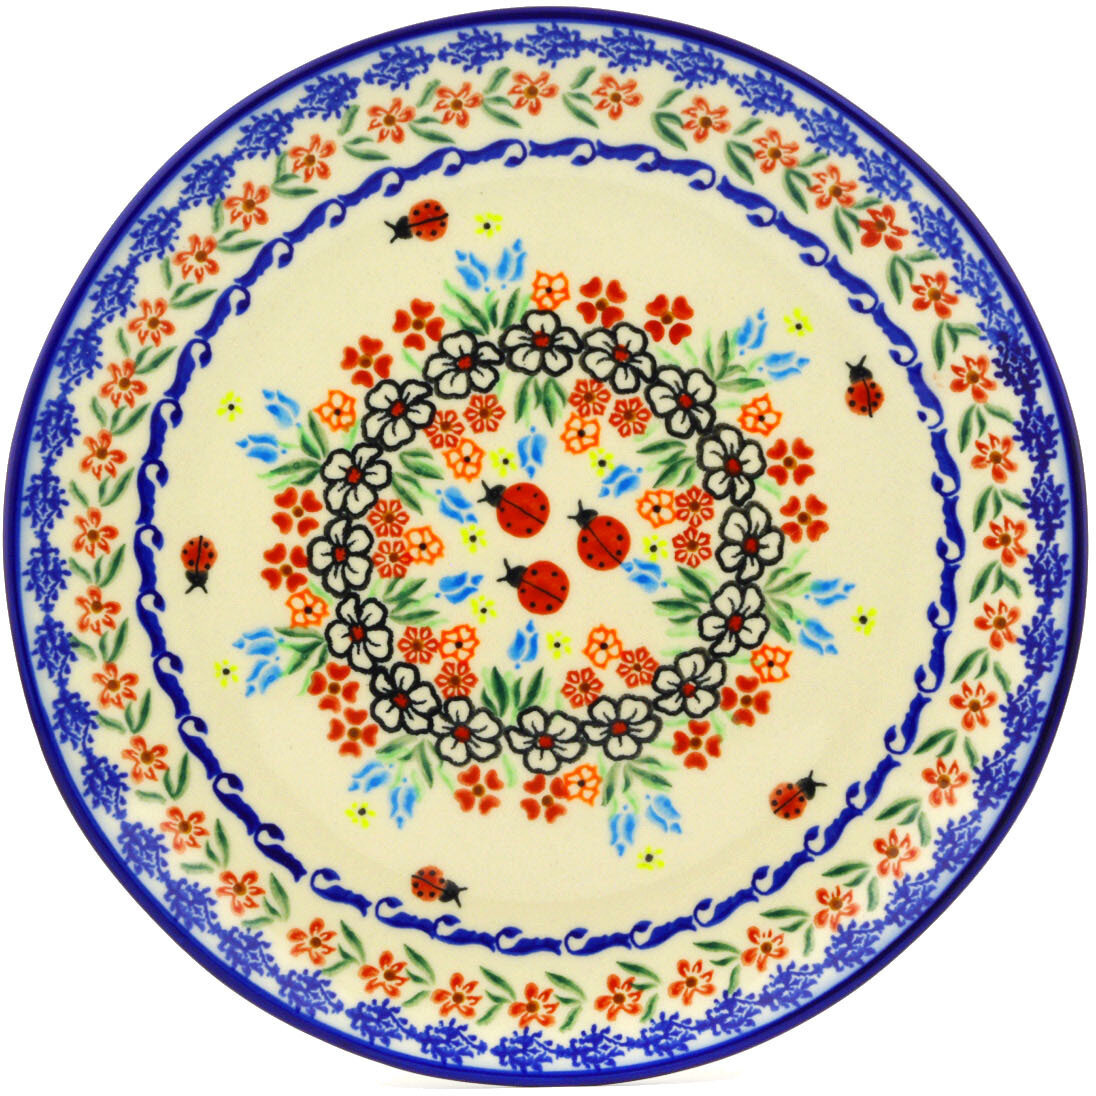 Polmedia Fanciful Ladybug Polish Pottery Decorative Plate | Wayfair